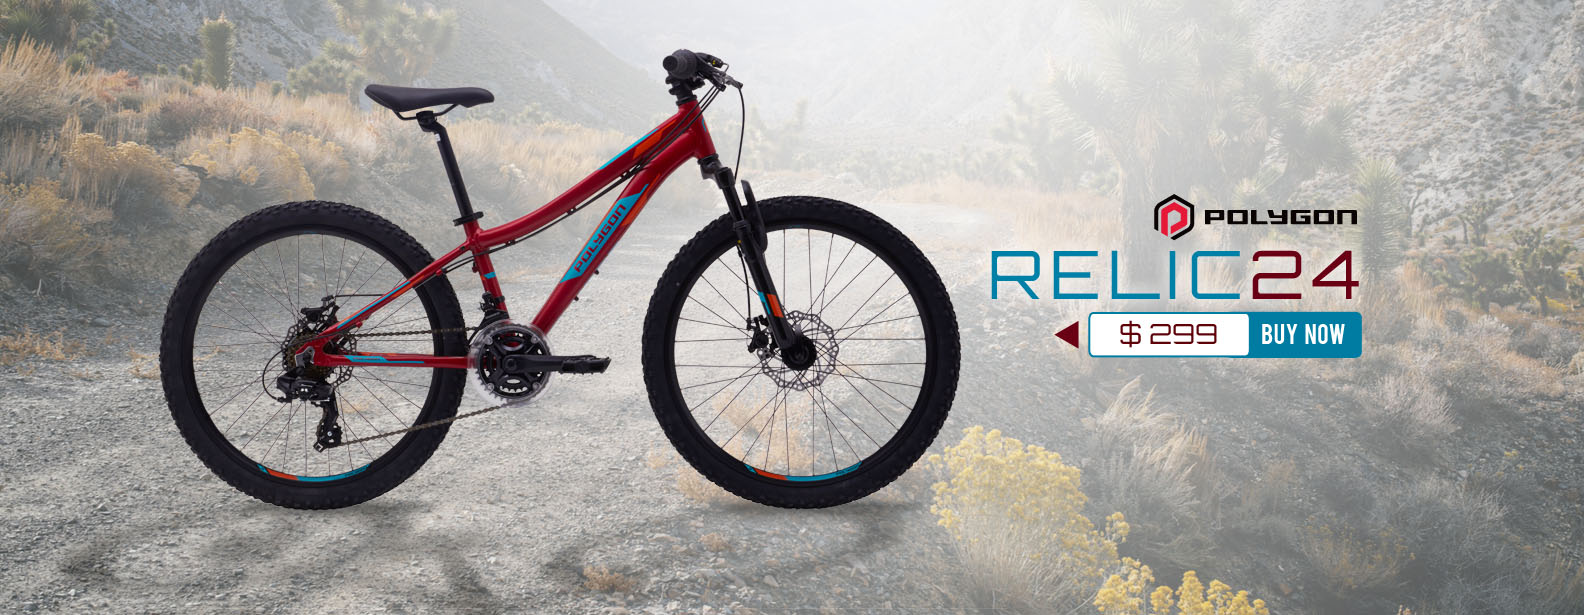 Polygon Relic Evo 24 Mountain Bike